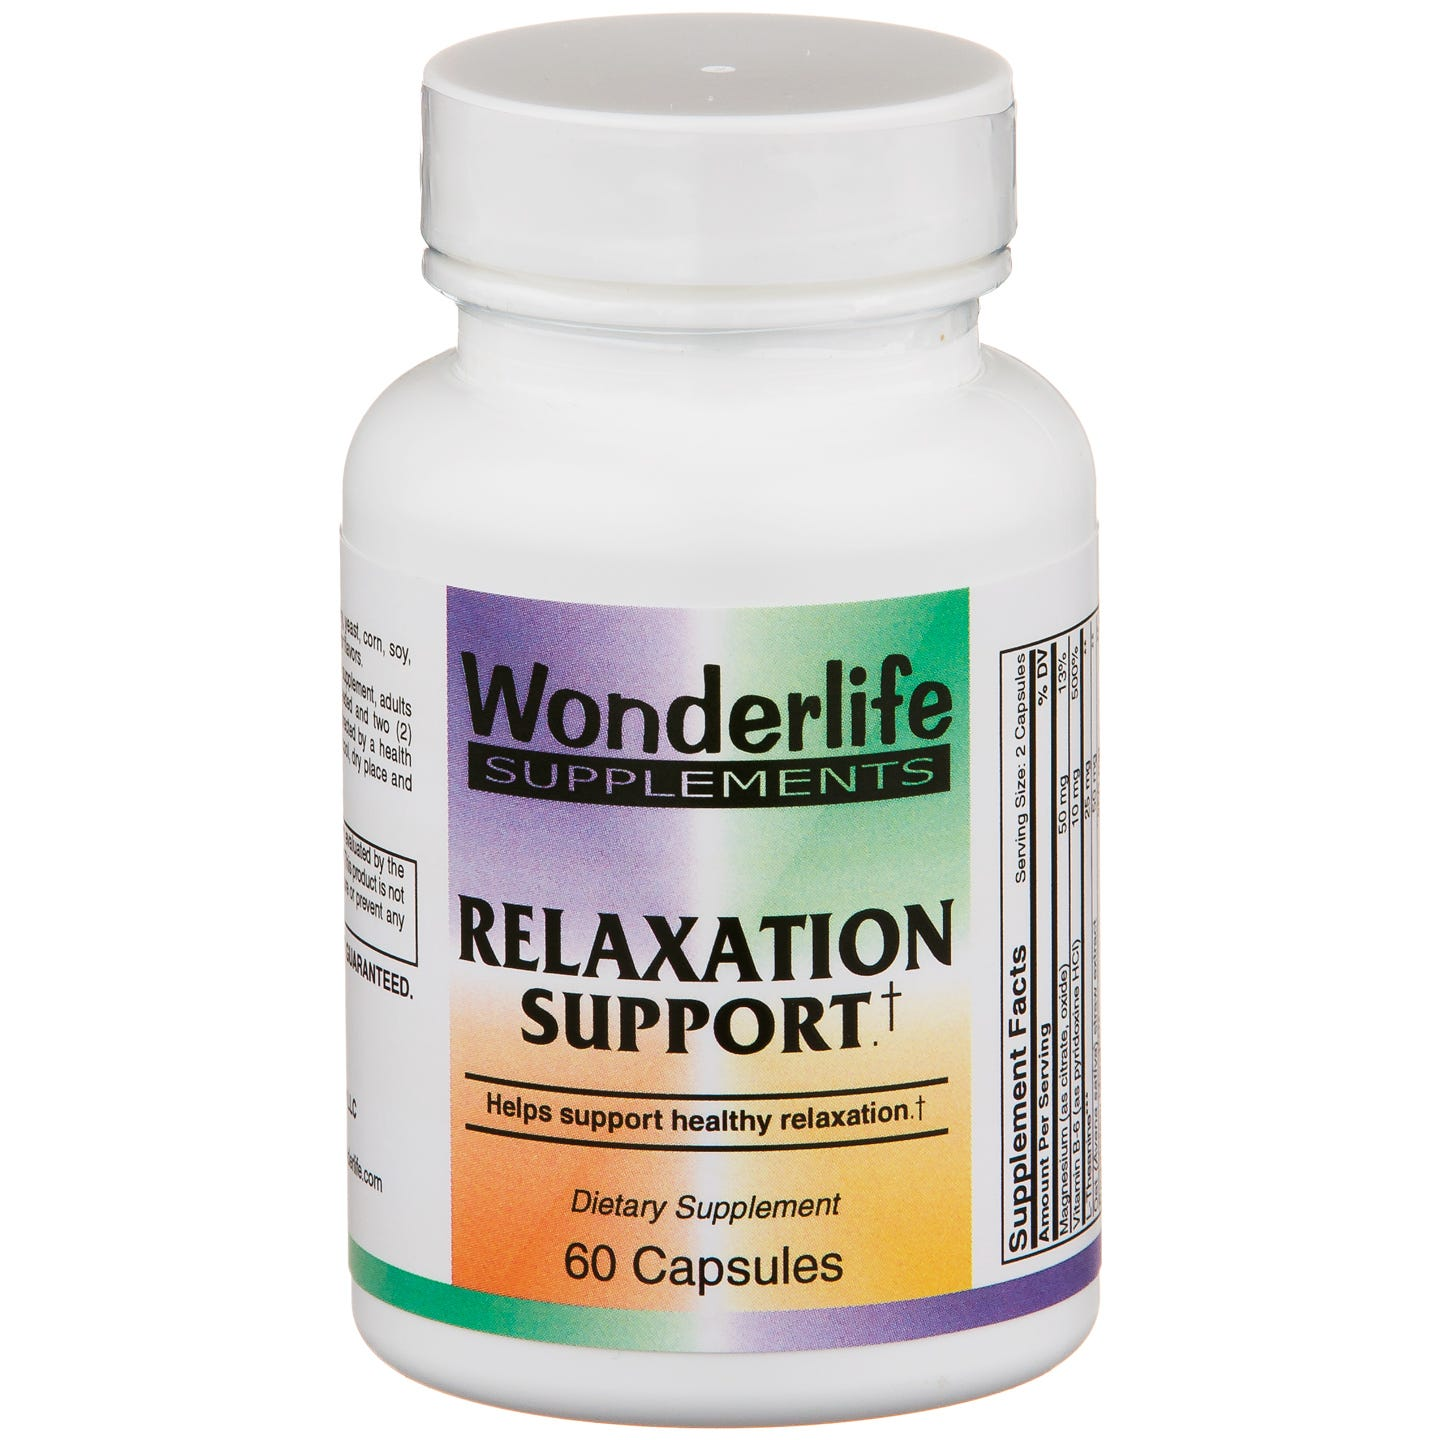 Relaxation Support (60 ct) - Wonderlife - Rapid Diet Weight Loss Products Shop